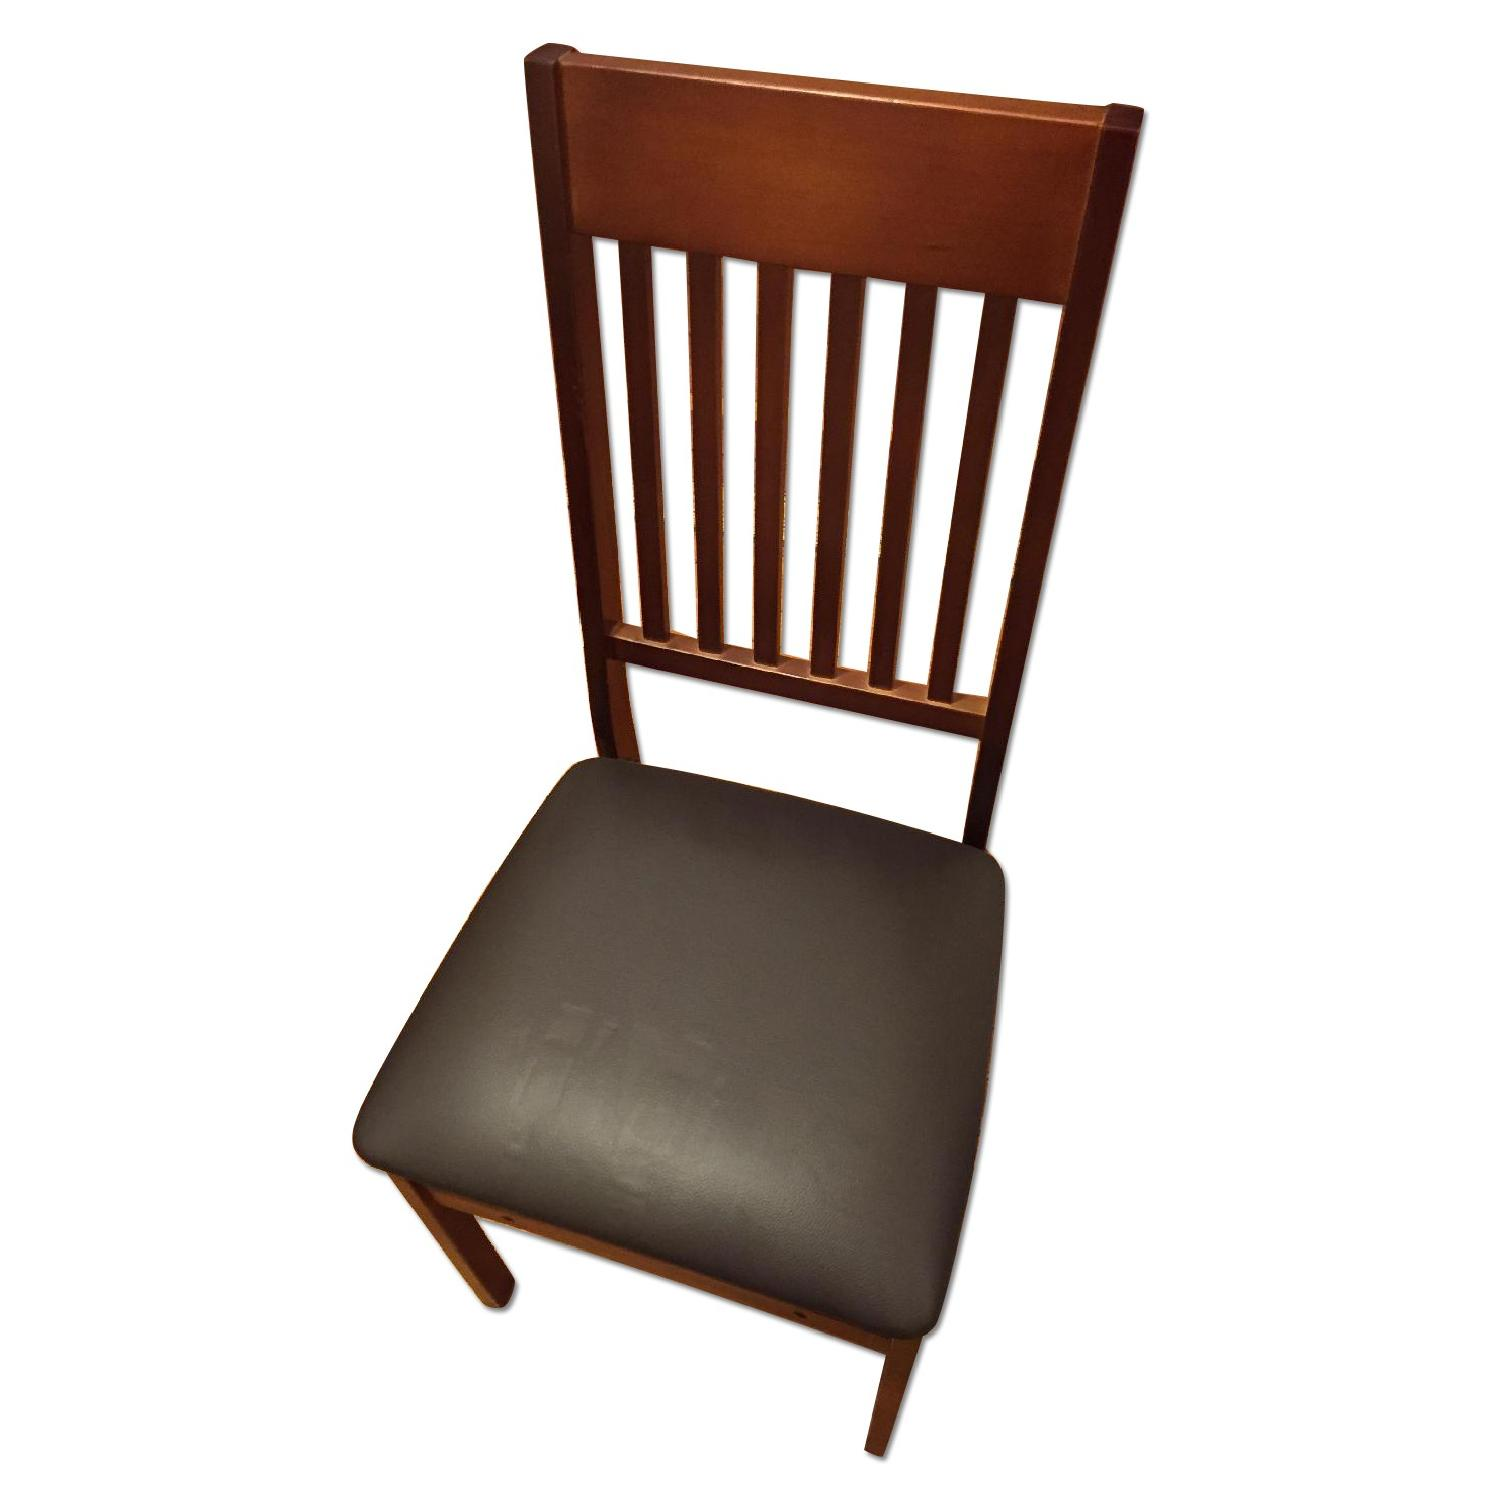 Wayfair Mission Wood Folding Chairs Set of 4